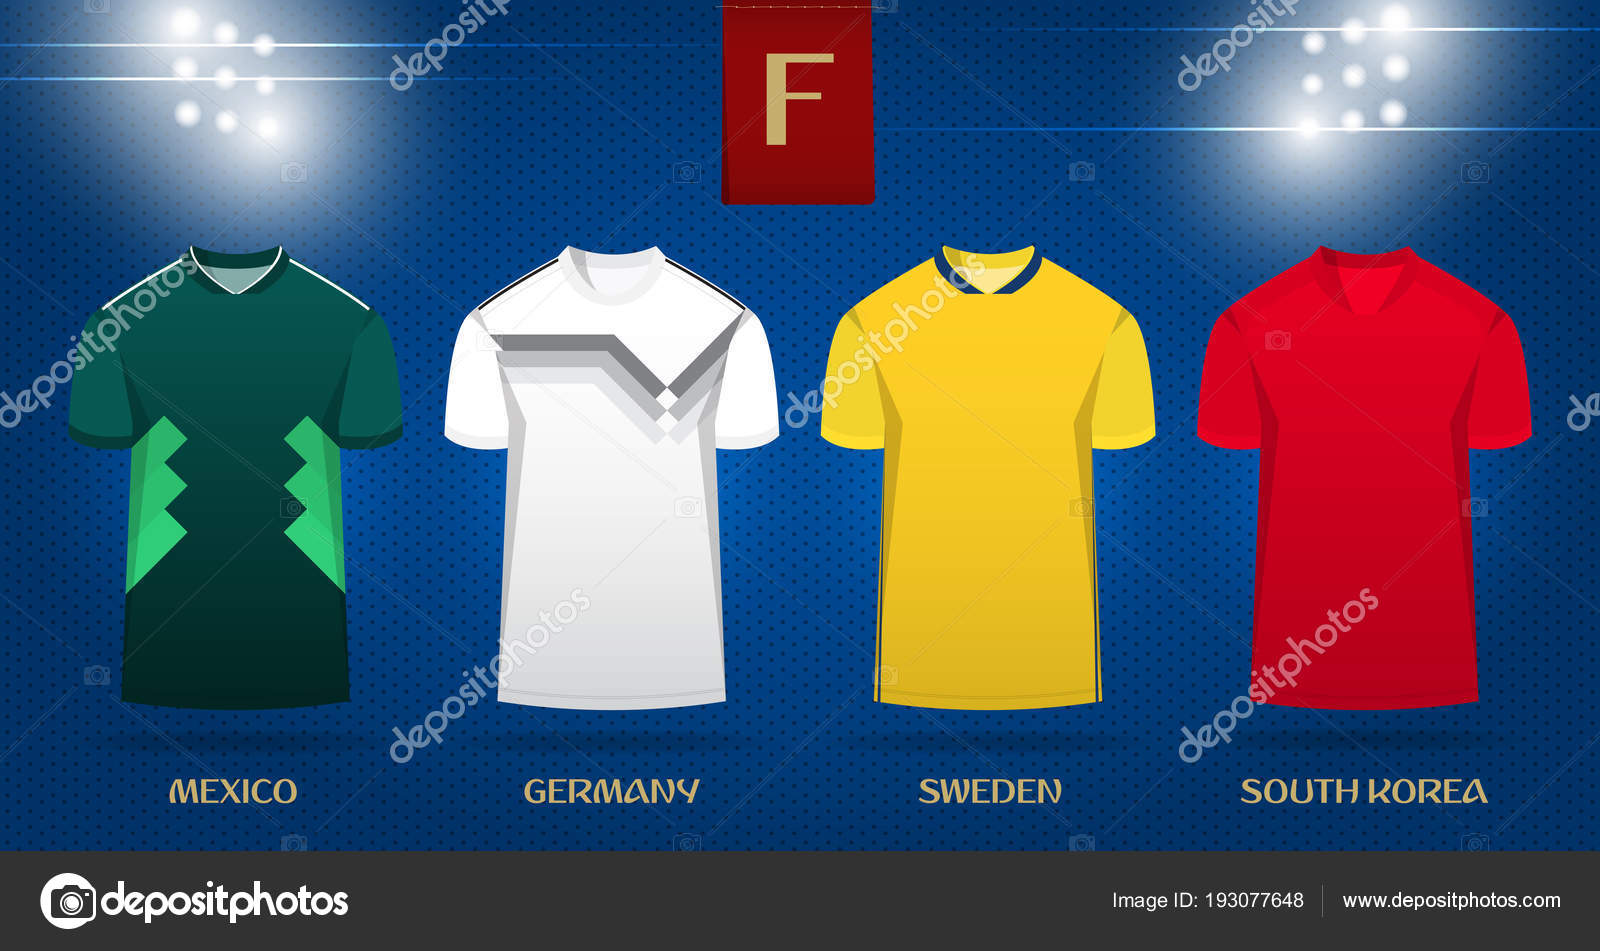 9d77cadf6 Vector.– stock illustration. Soccer kit or football jersey template design  for national football team. Front view soccer uniform